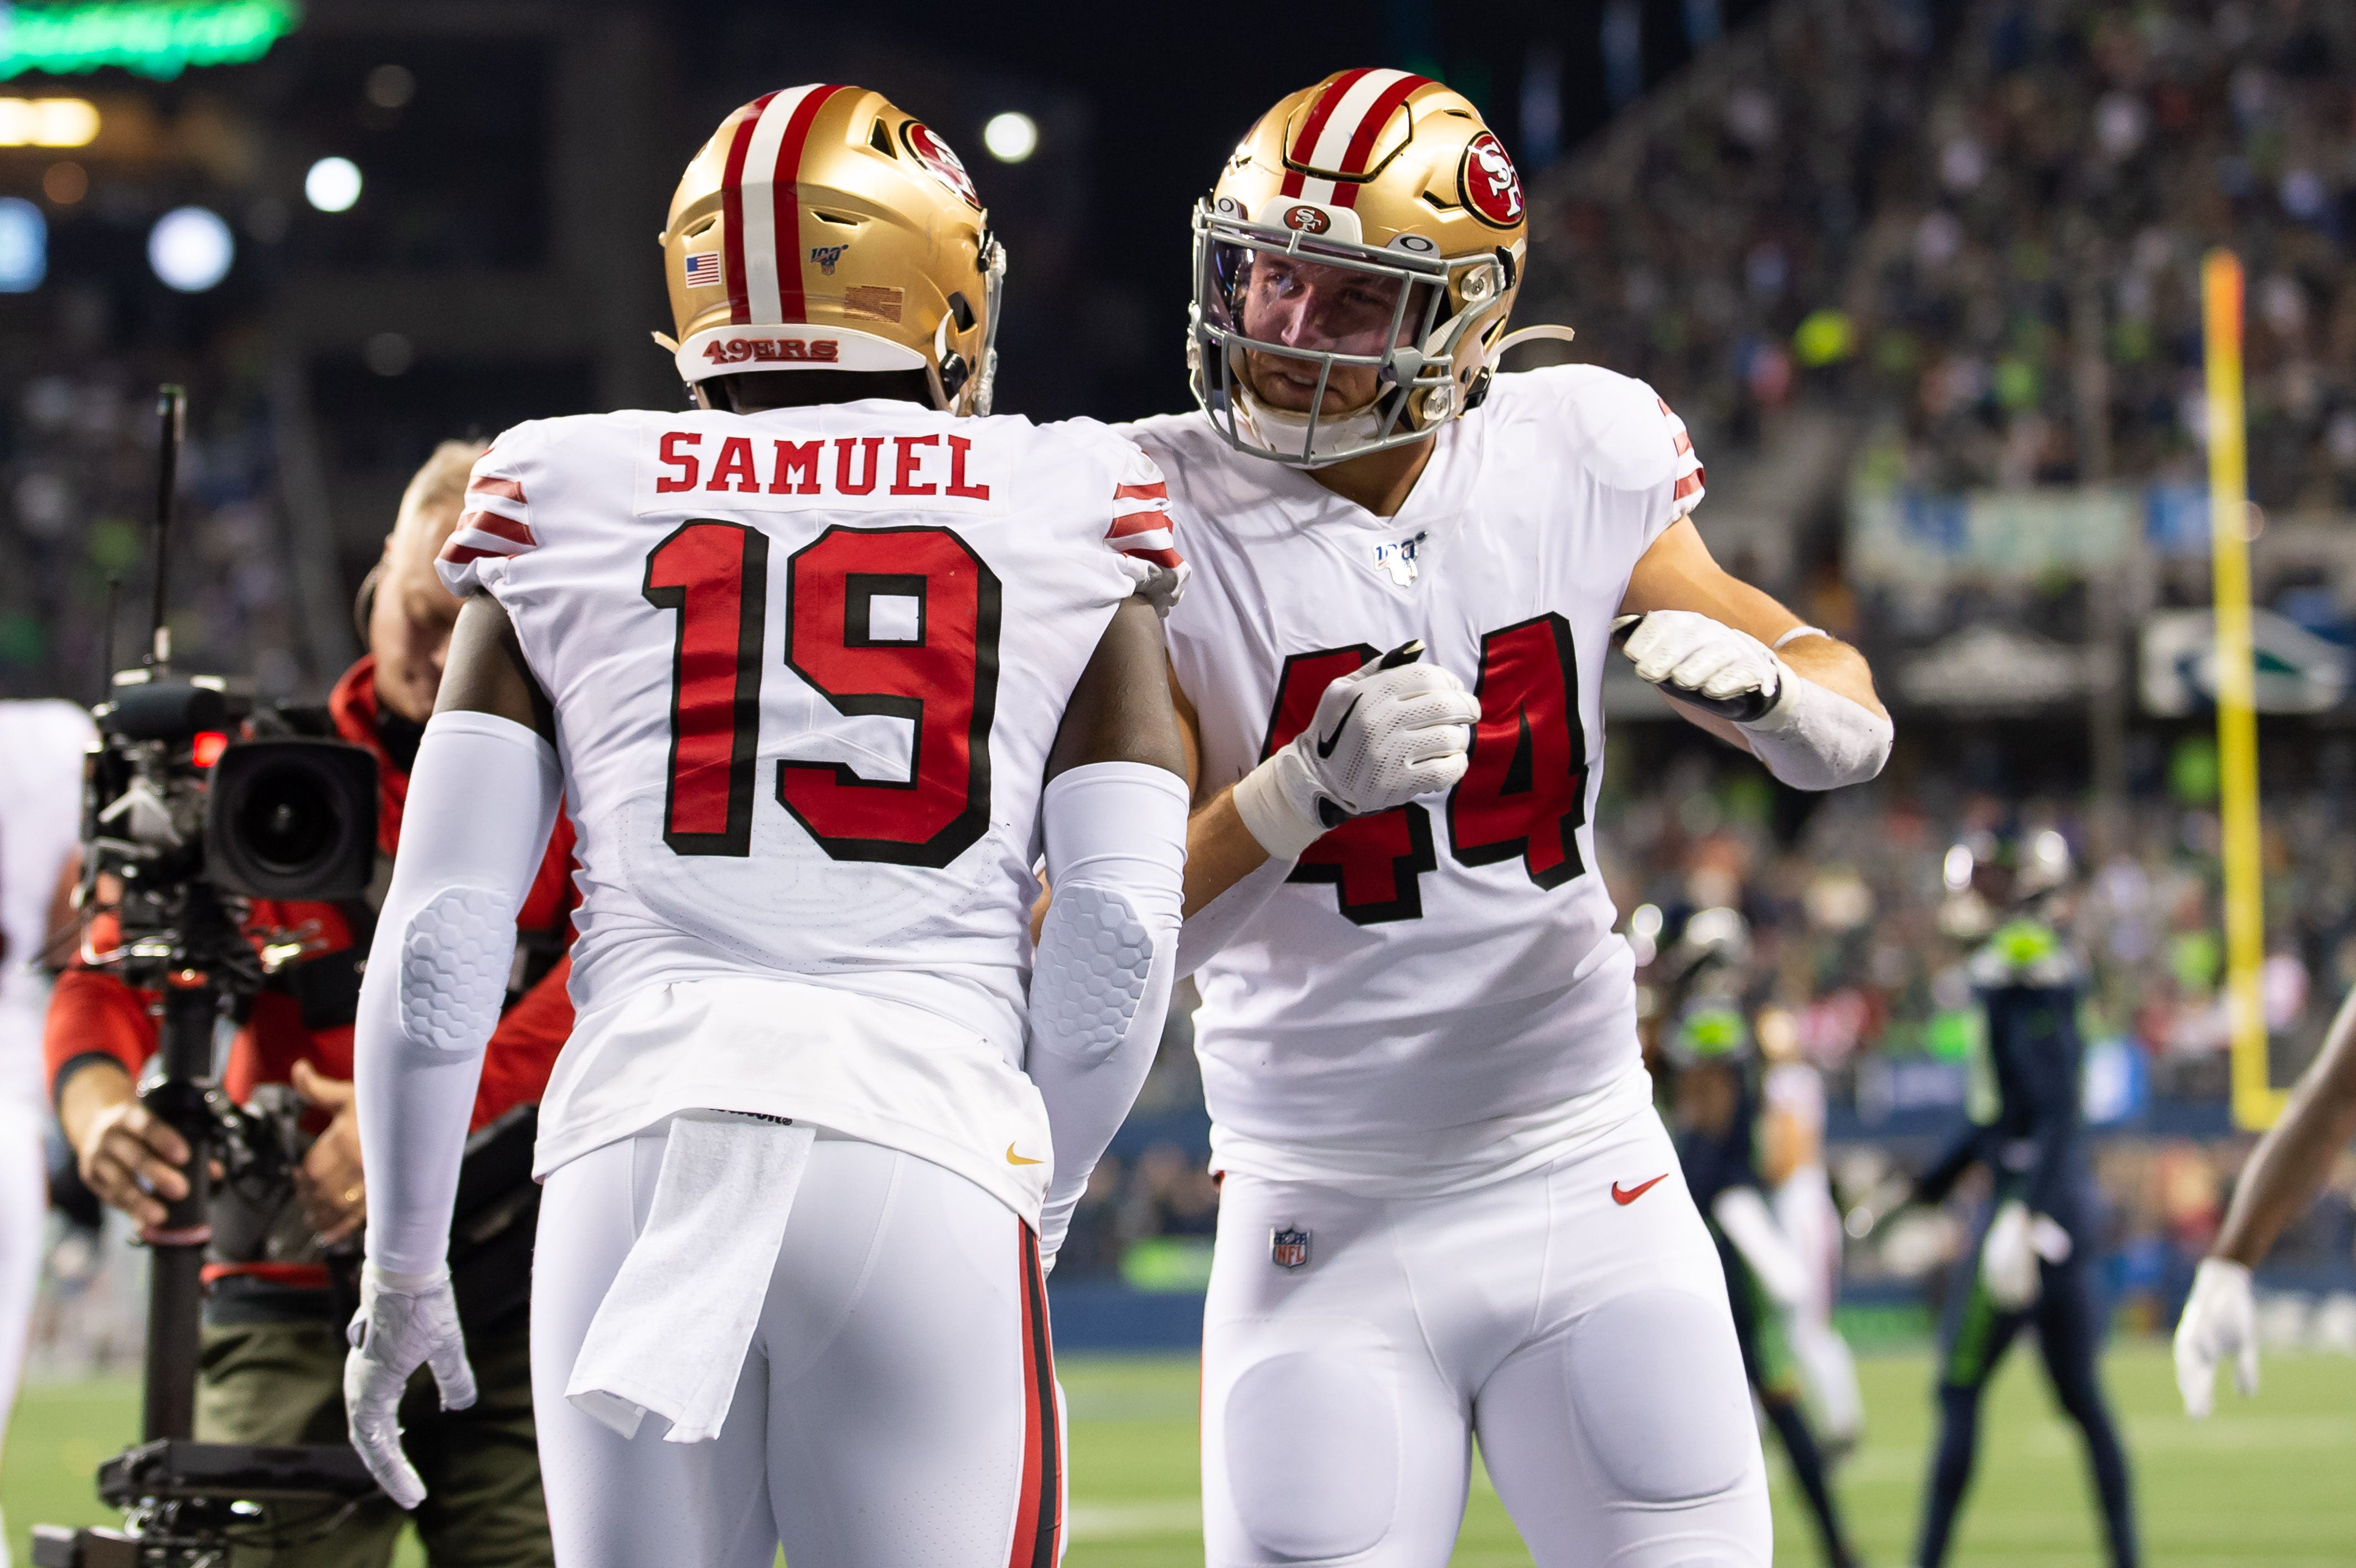 NFL playoff picture after Week 17: 49ers hang on to win NFC West, home field; Eagles, Titans clinch final berths